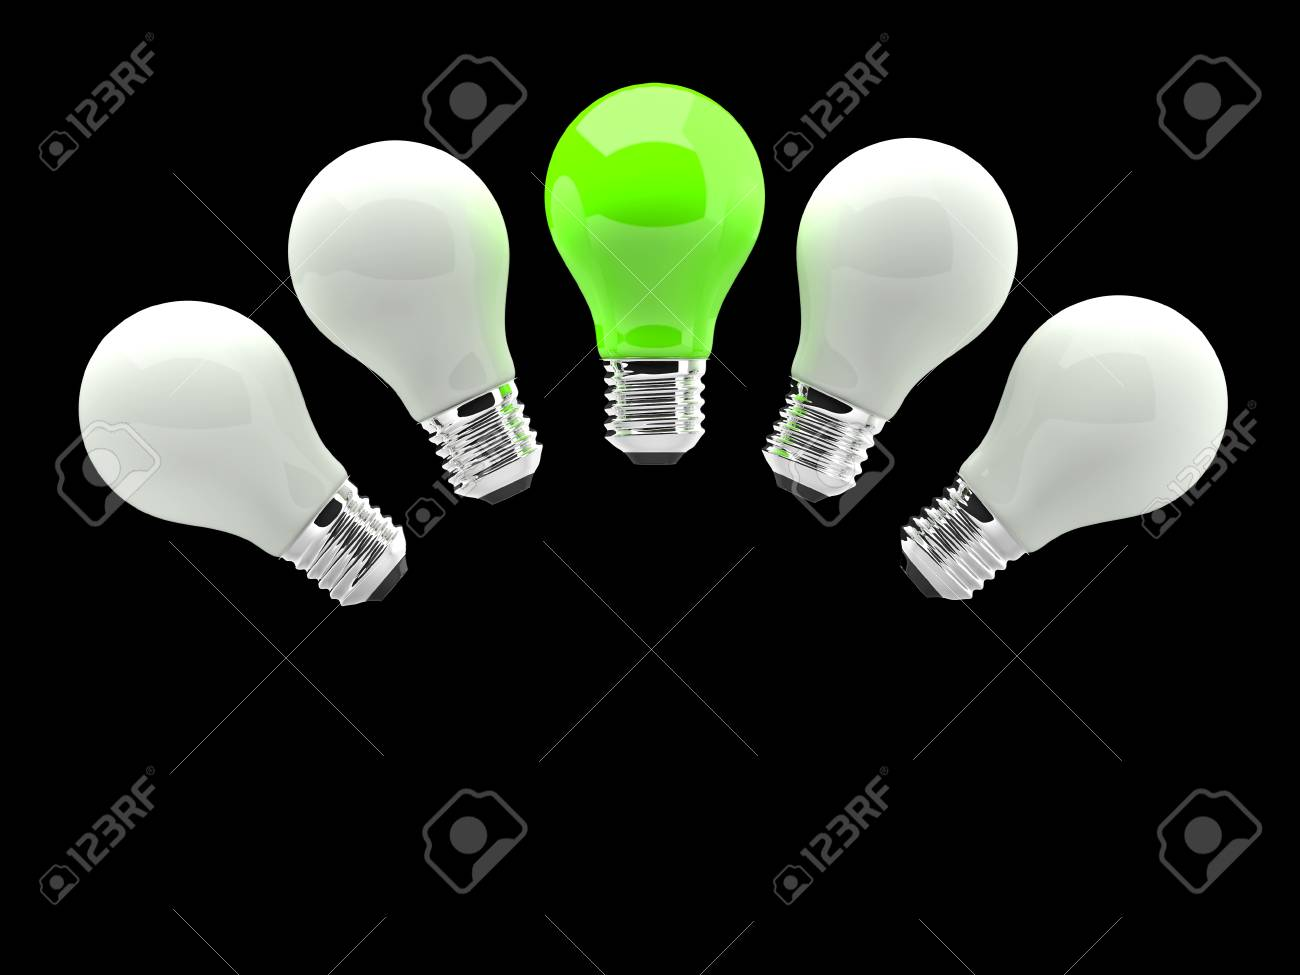 Lighting Bulb White and One Green Stock Photo - 17530631